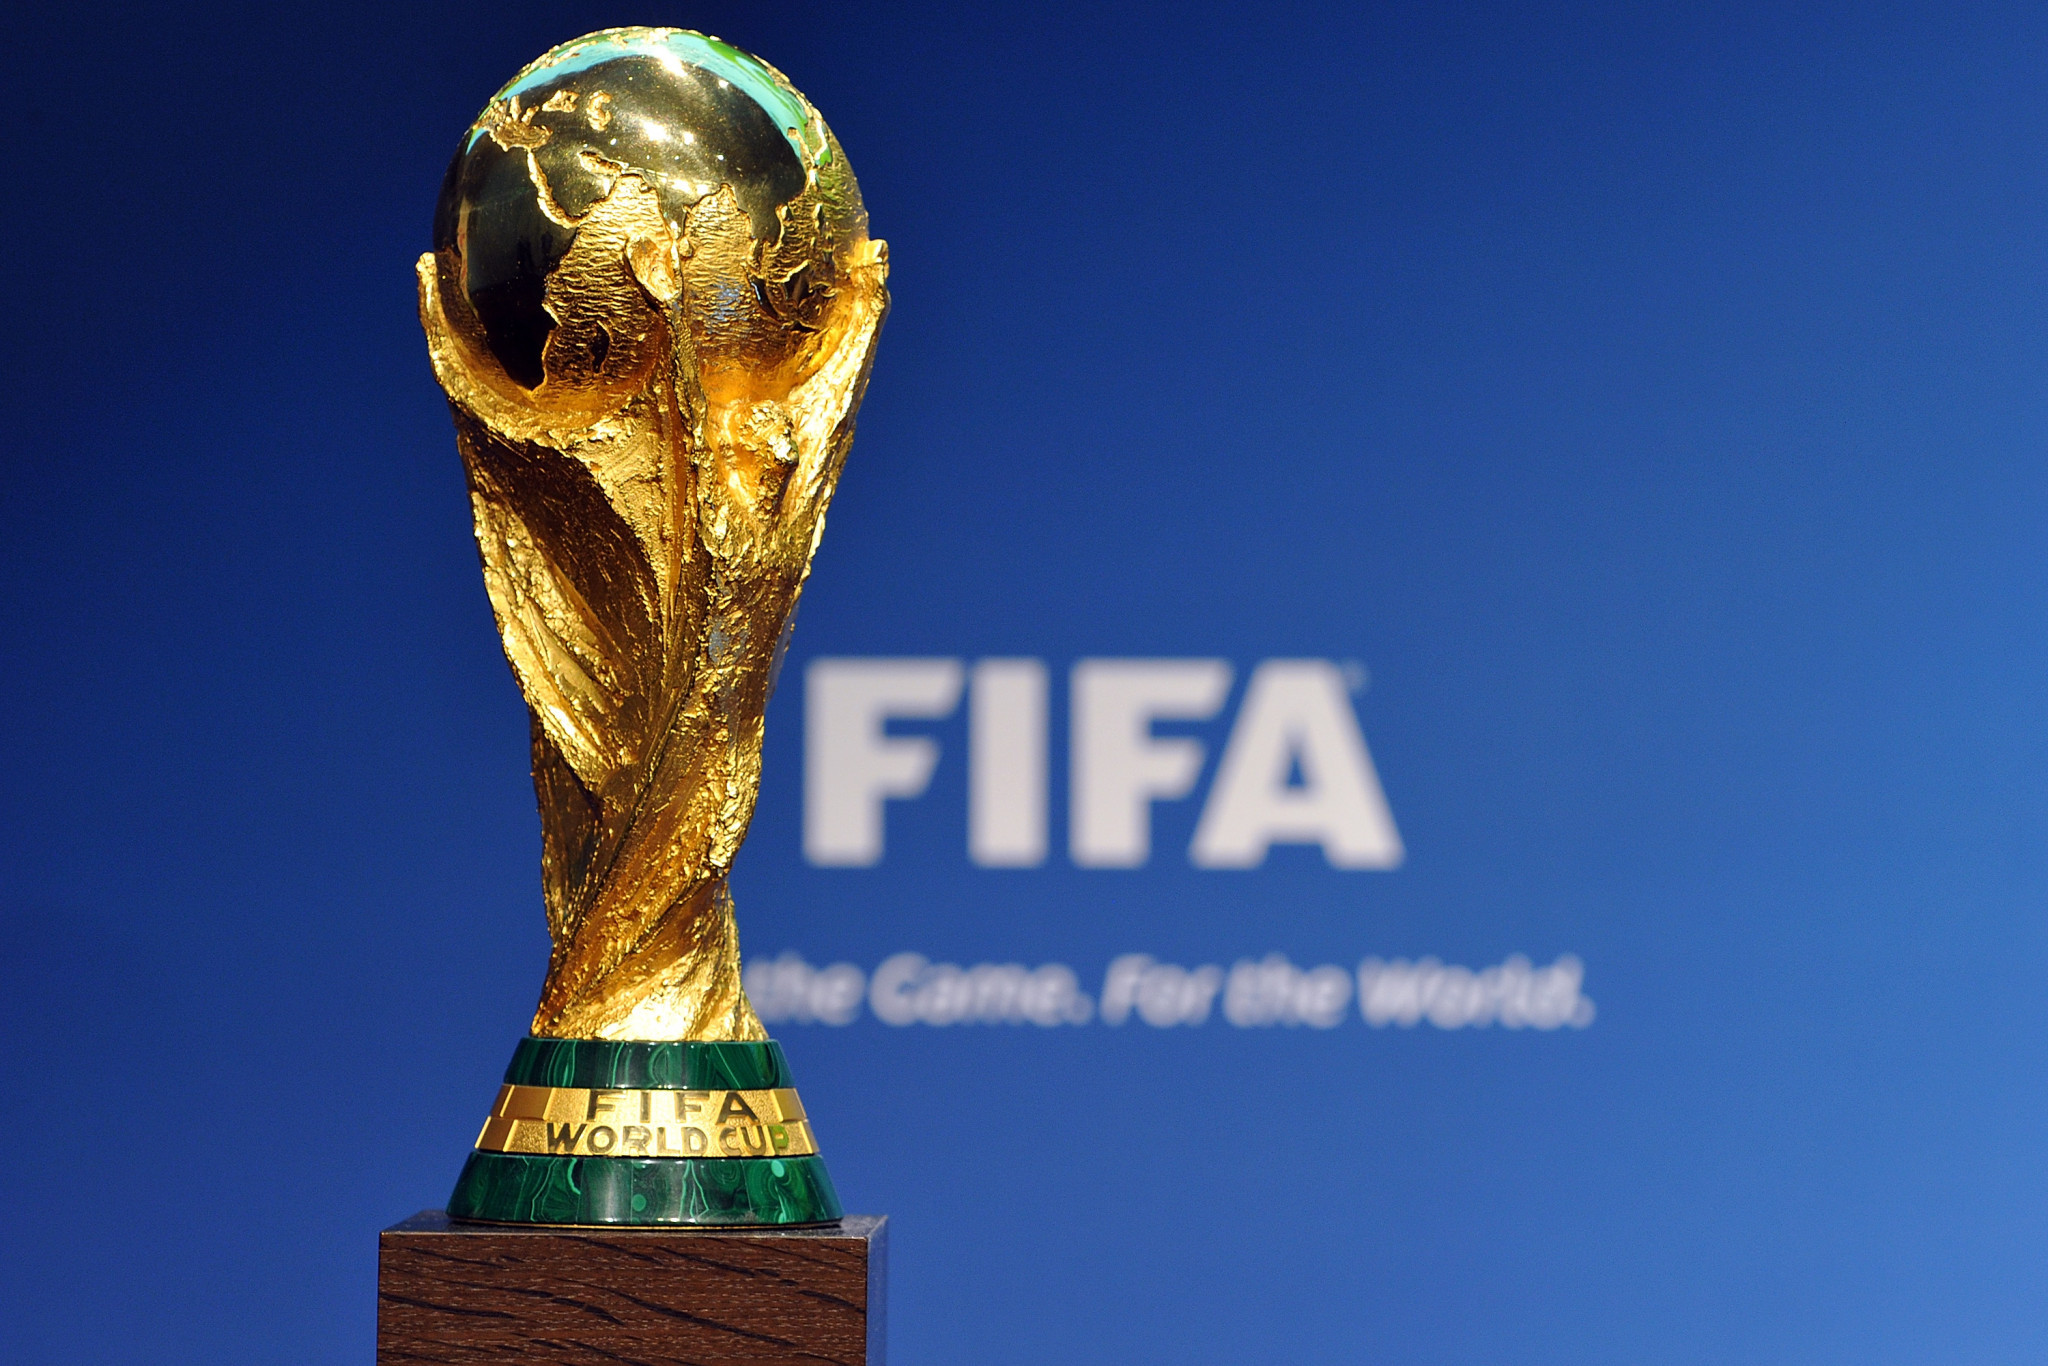 FIFA will discuss a proposal to hold the World Cup and Women's World Cup every two years ©Getty Images